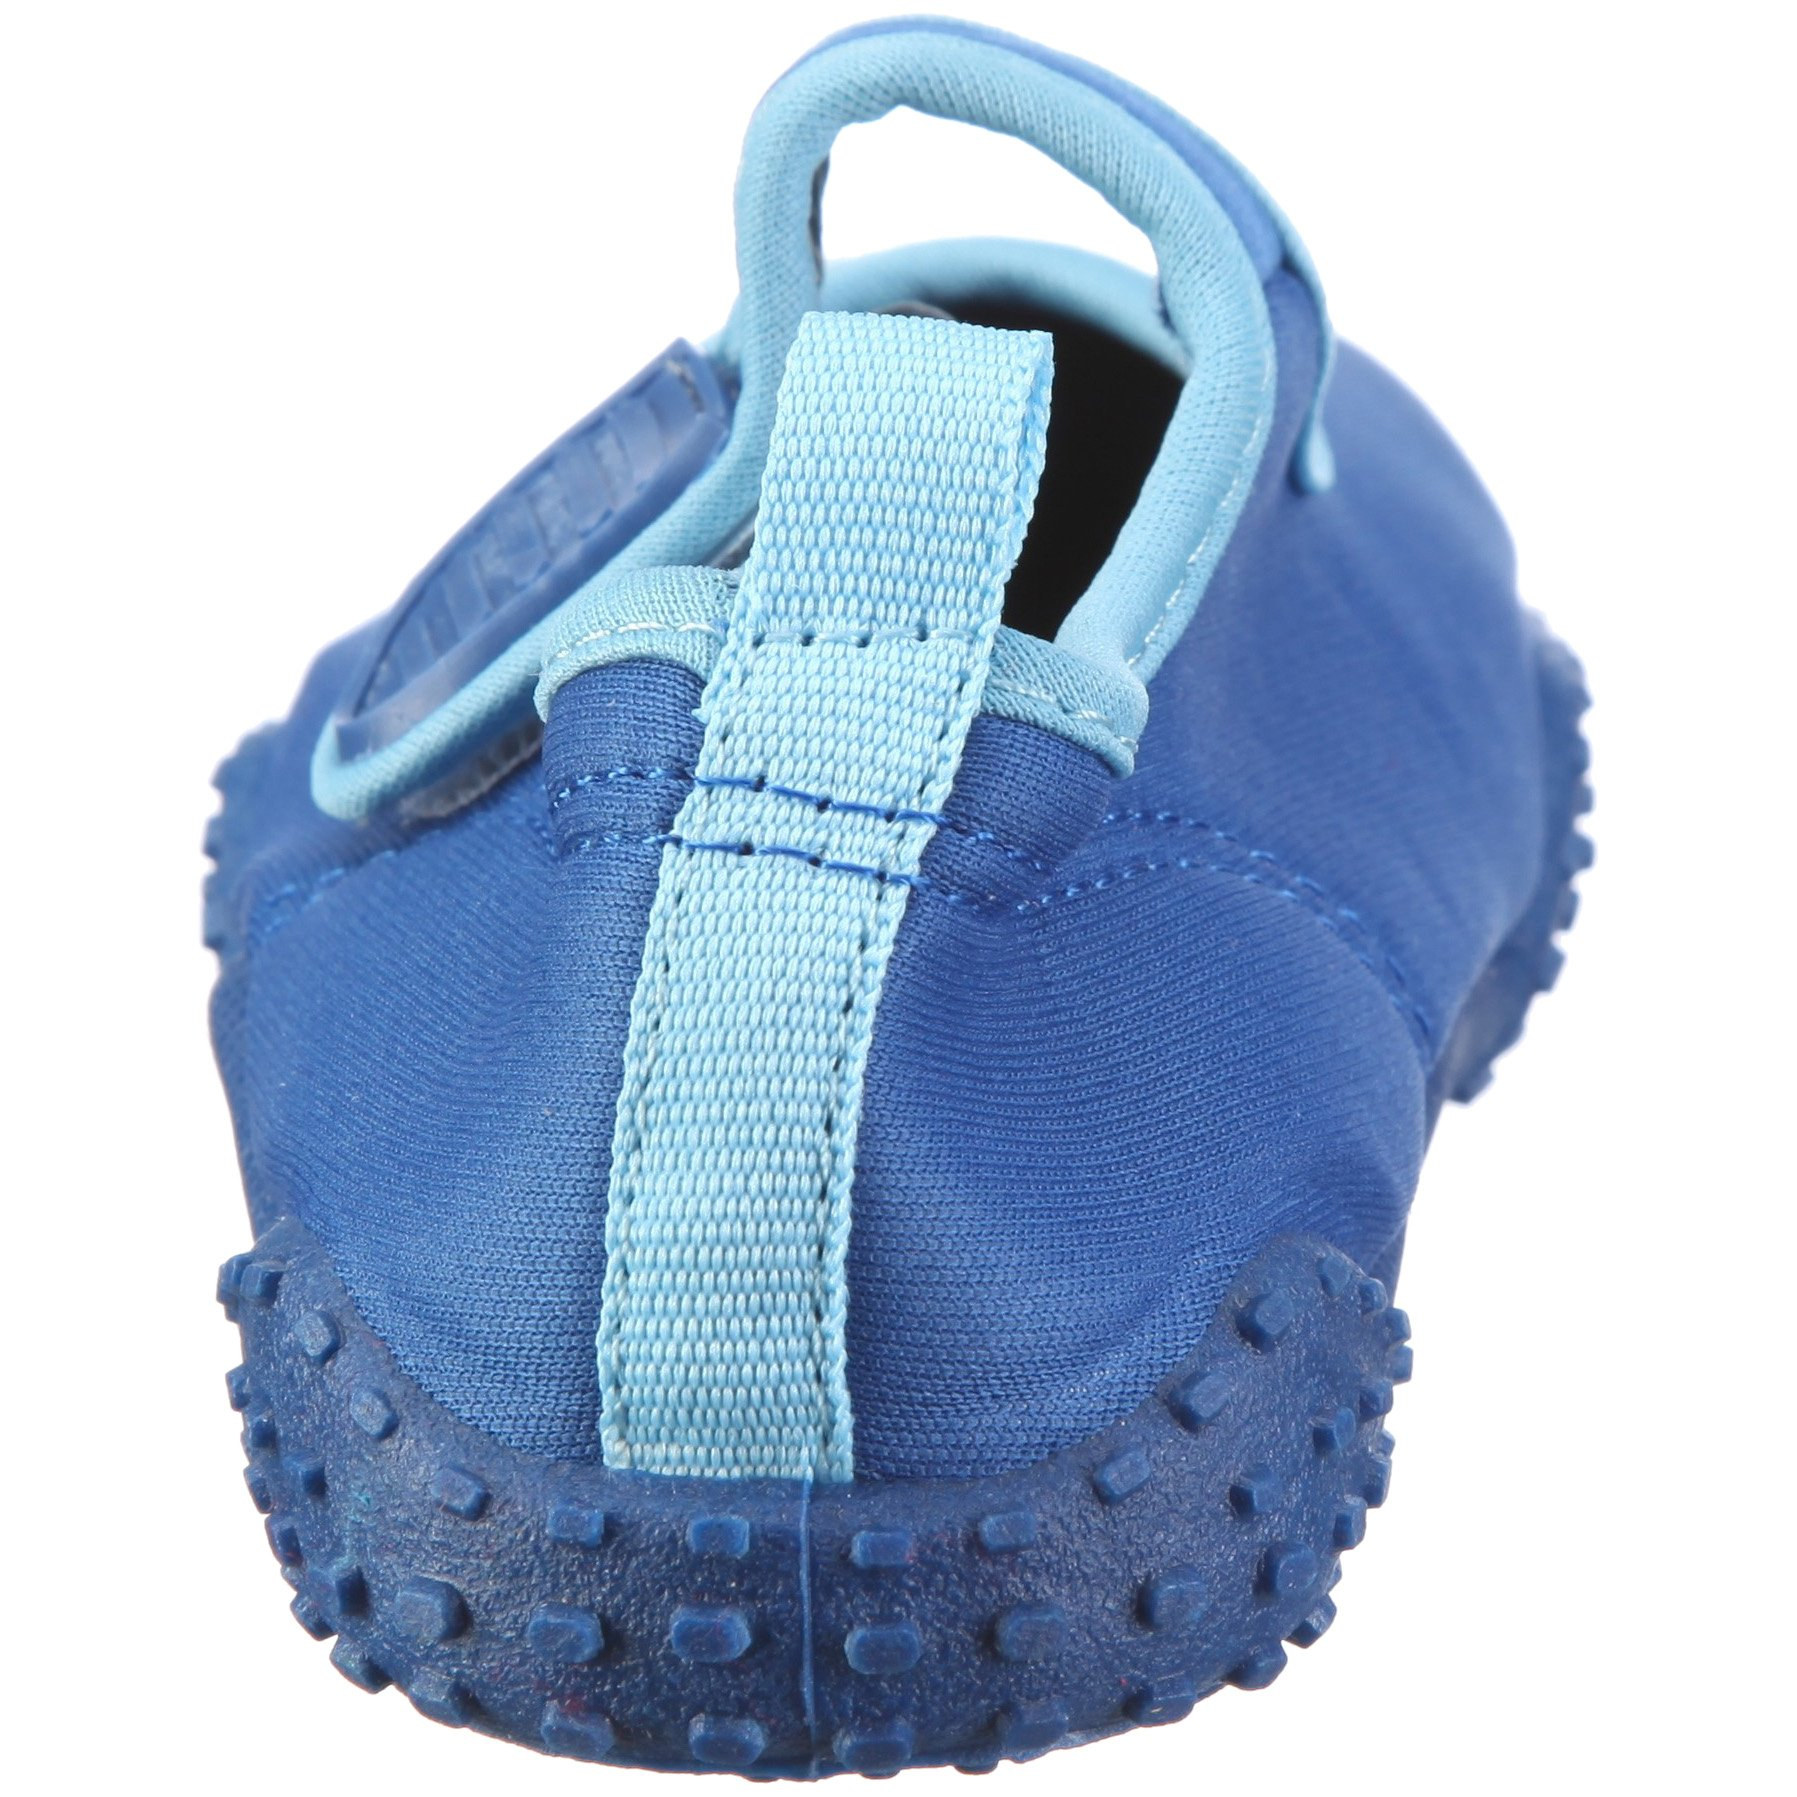 Playshoes Children's Aqua Beach Water Shoes (11.5 M US Little Kid, Blue) by Playshoes (Image #2)